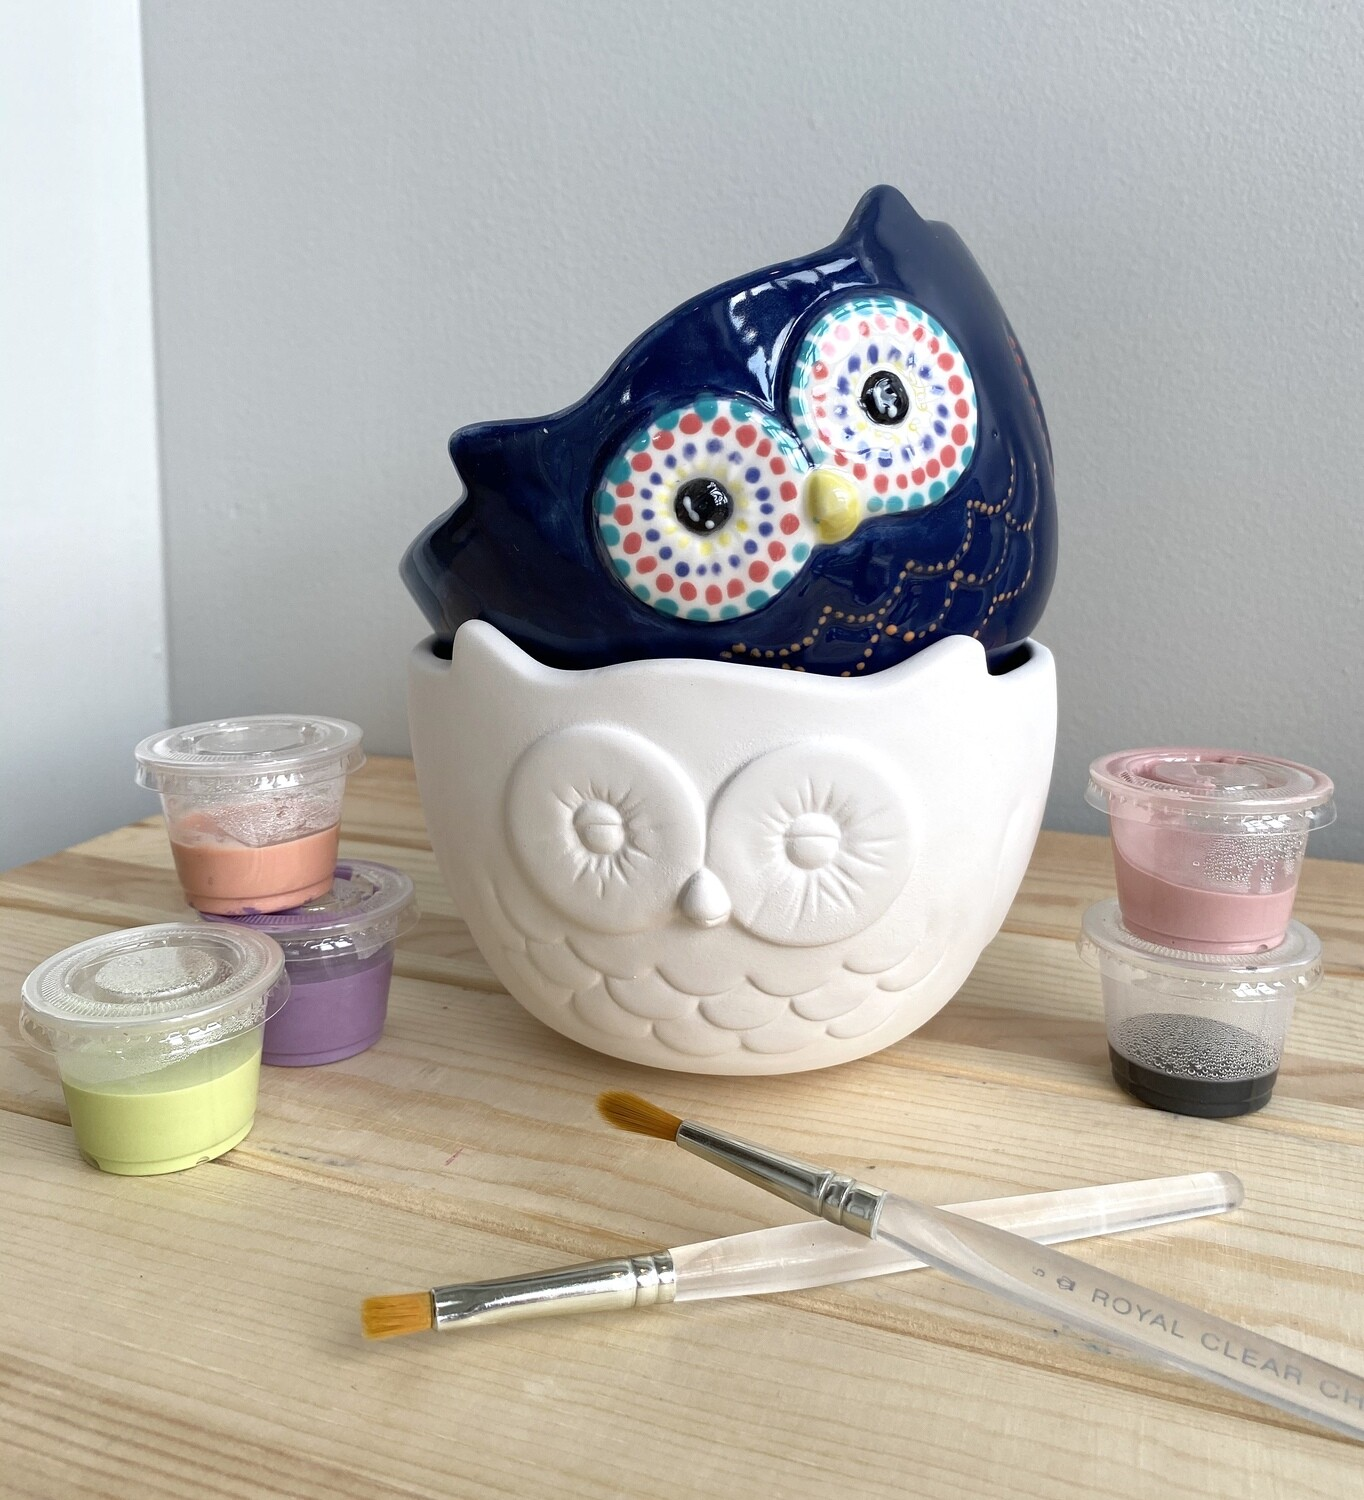 Take Home Owl Bowl with Glazes- Pick Up Curbside